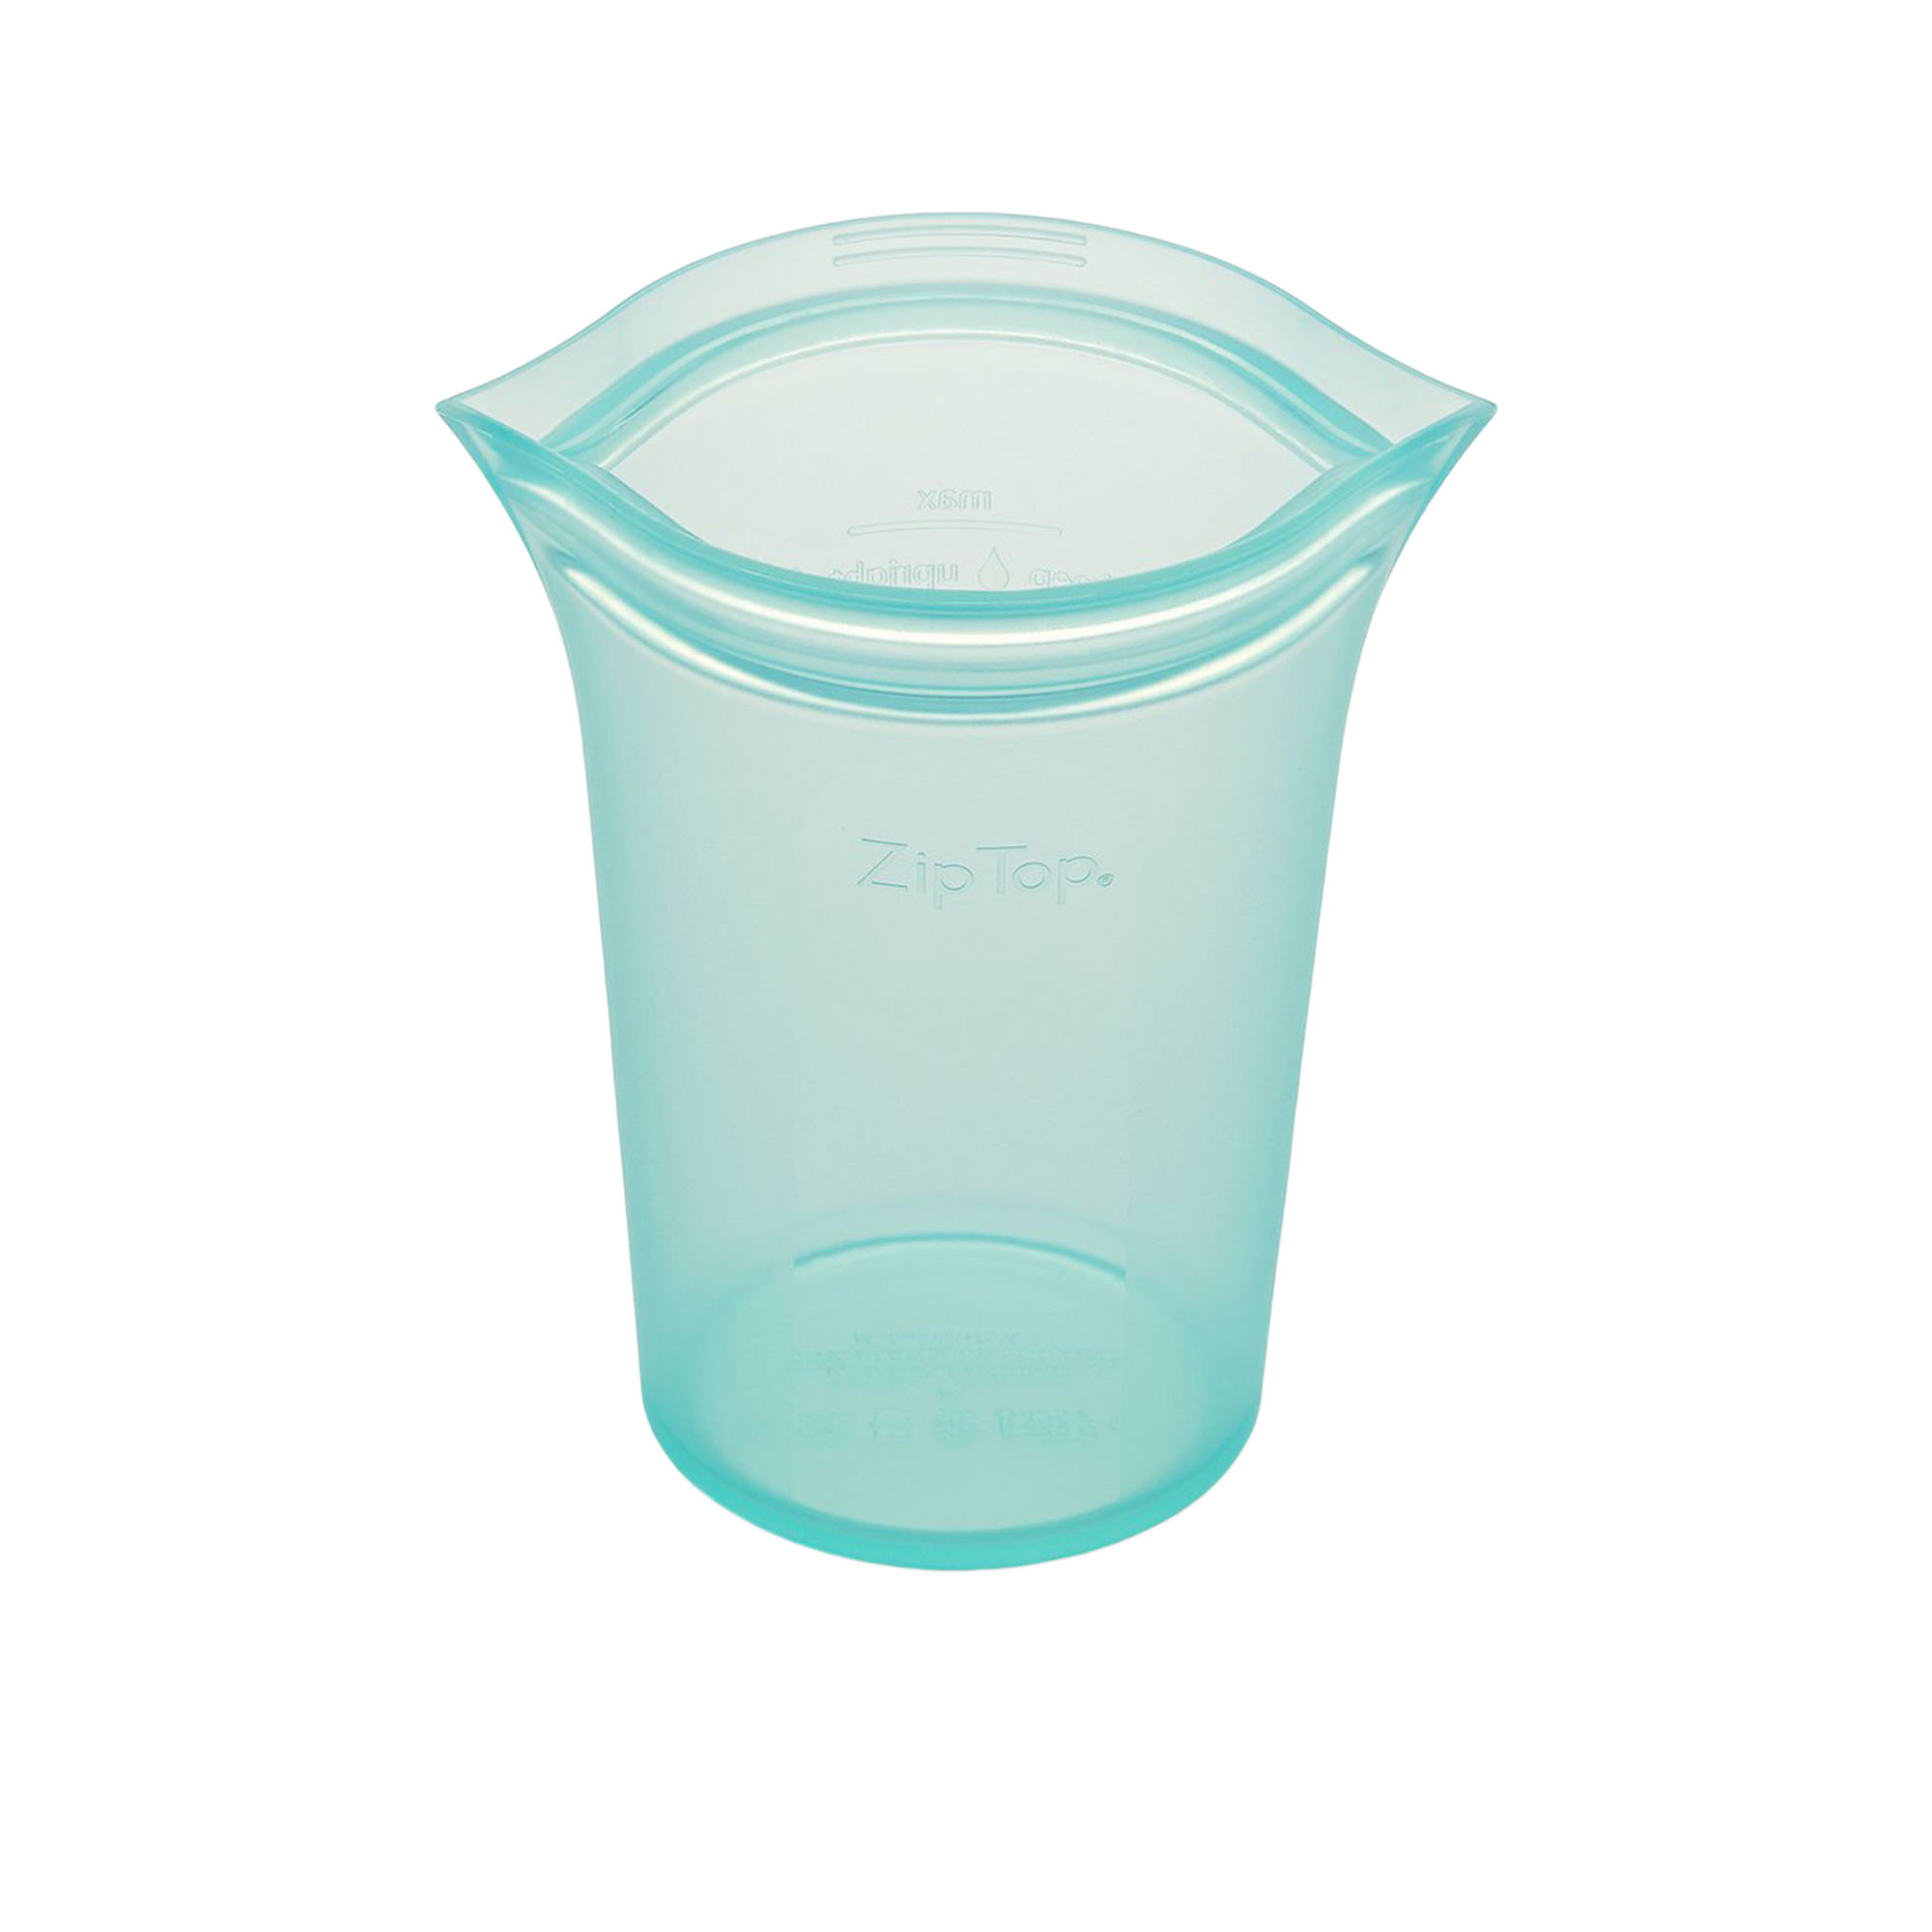 Zip Top Platinum Silicone Large Cup Container 710ml Teal